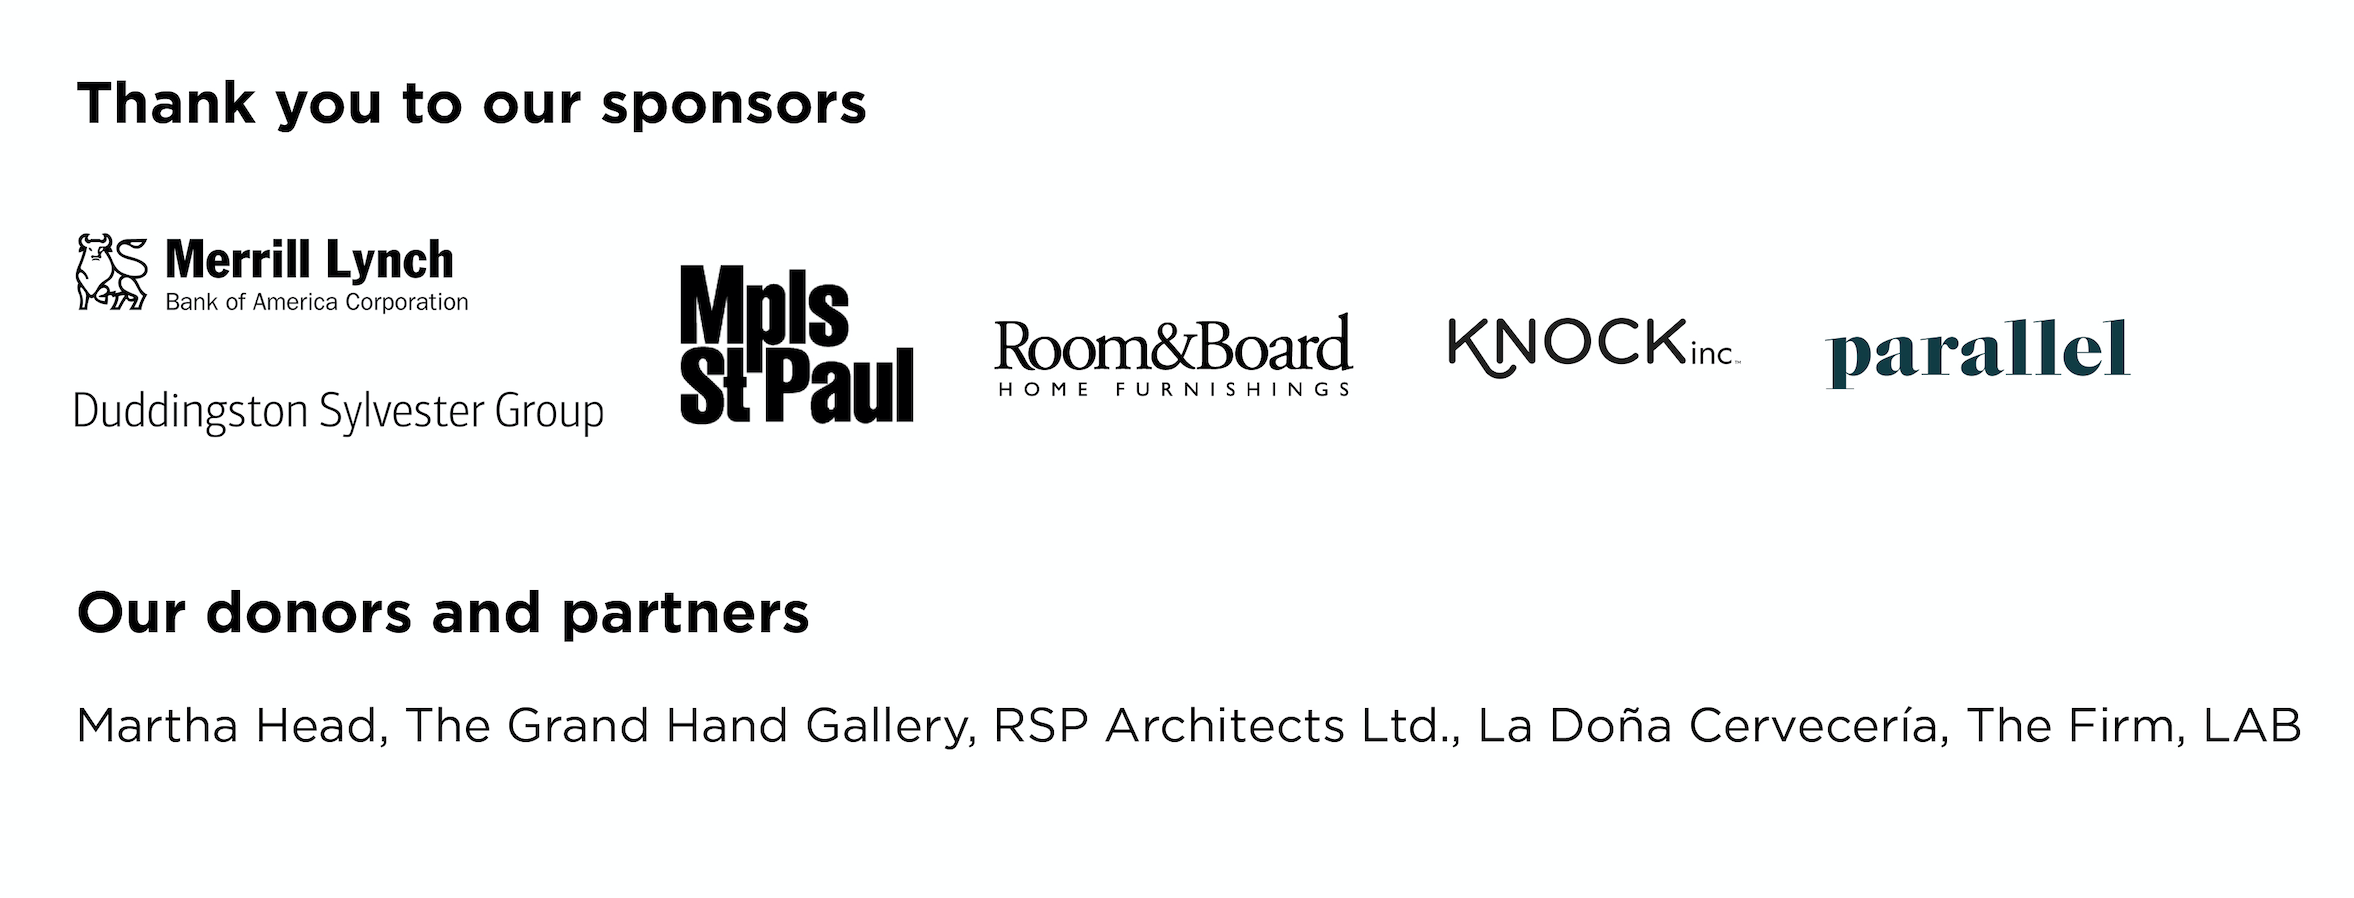 Sponsors, Partners, and Donors